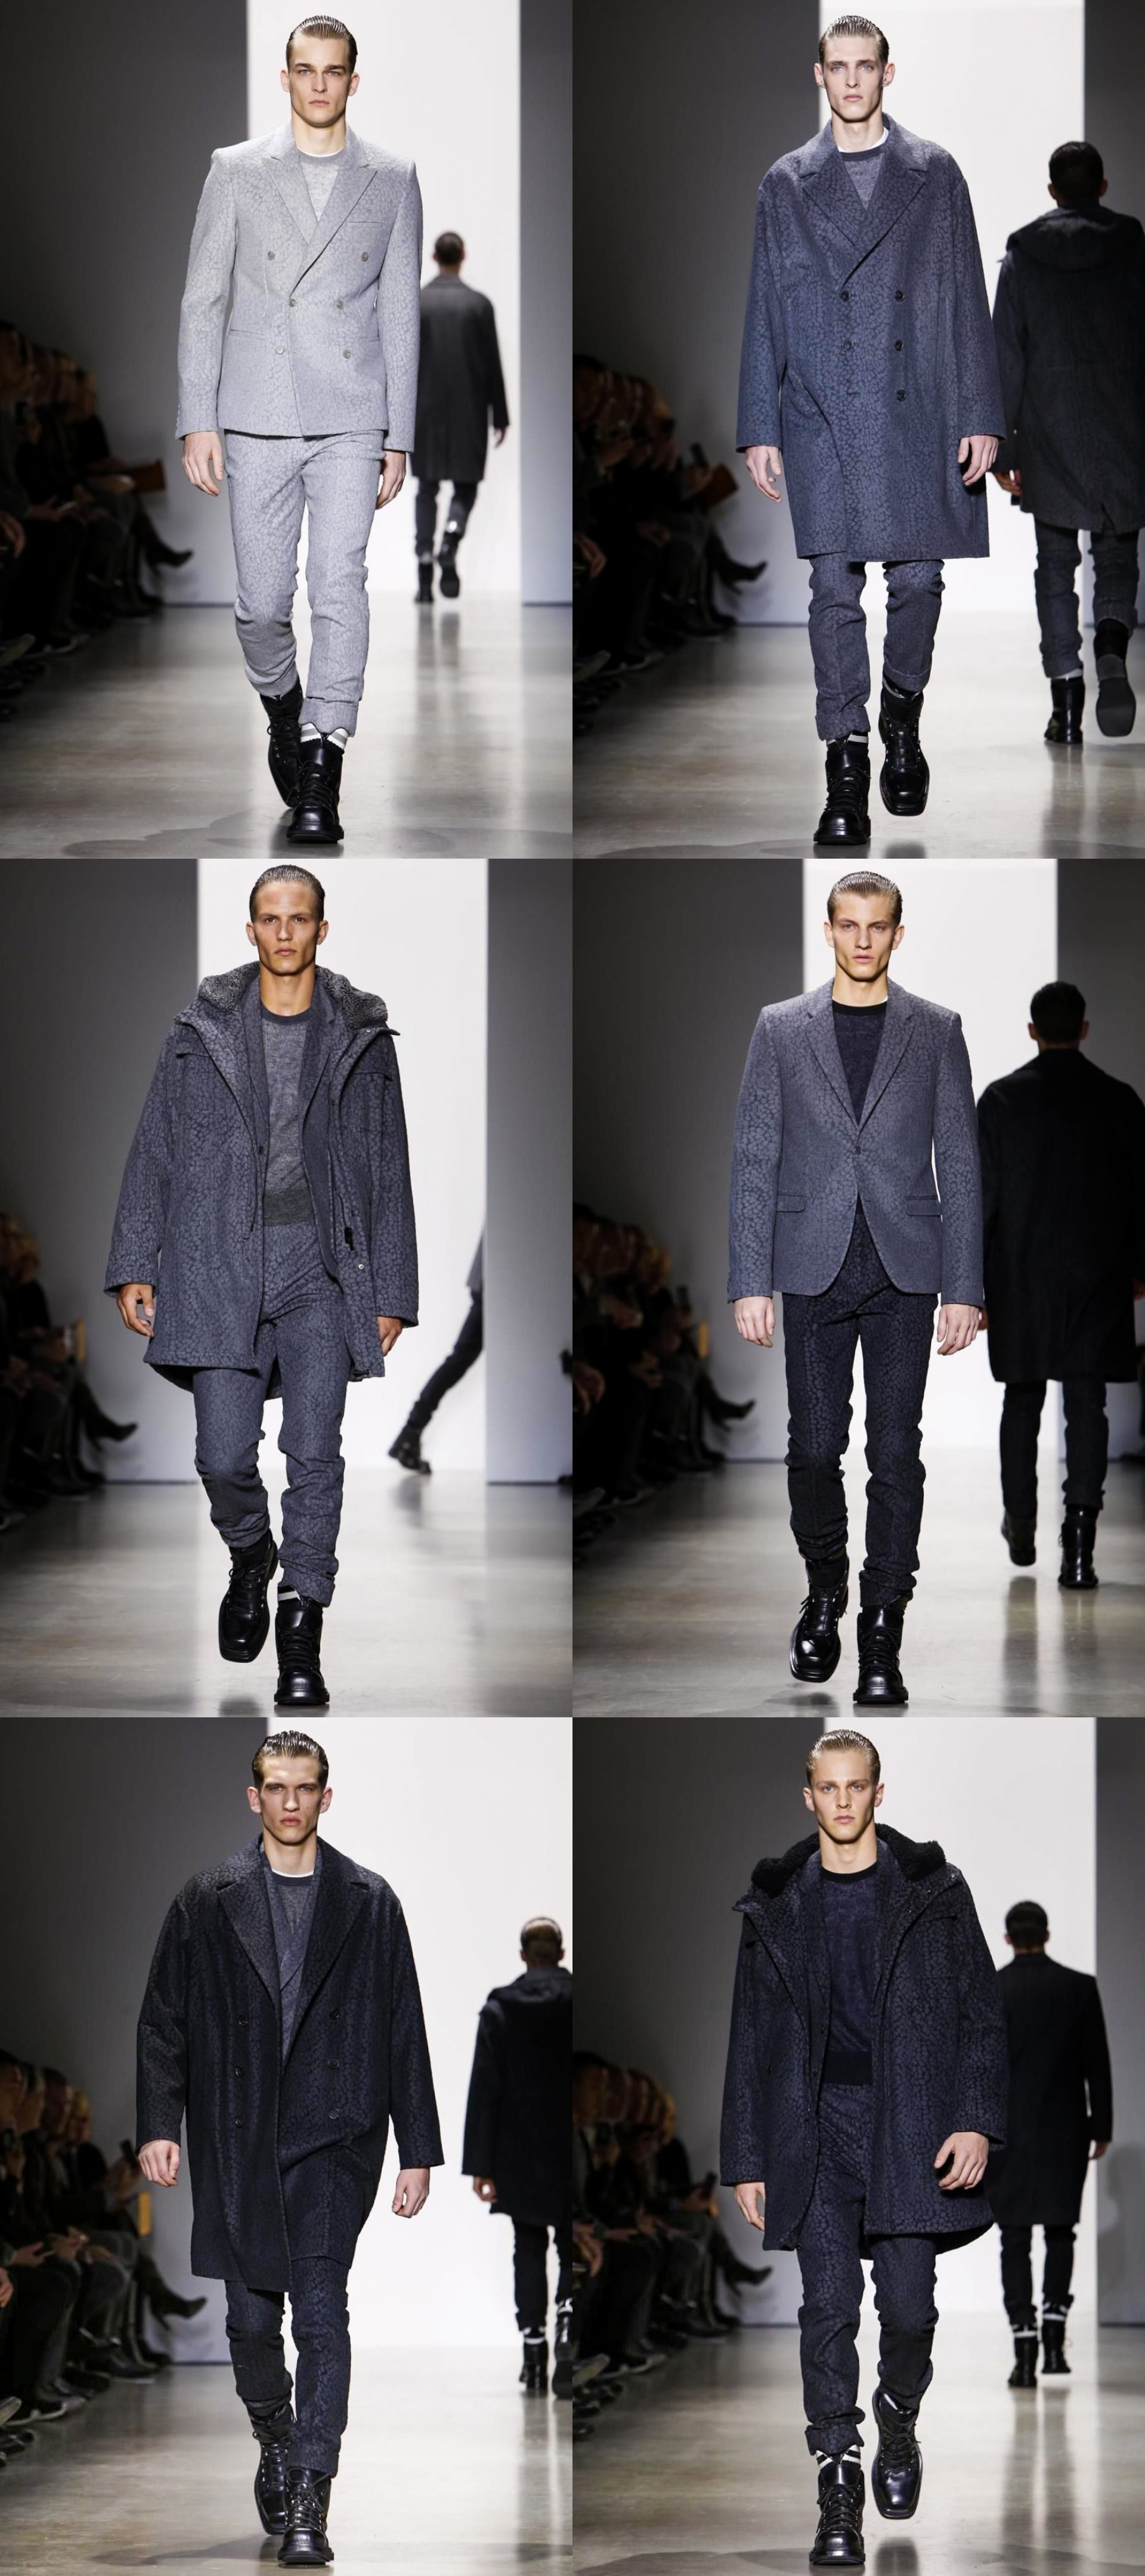 CALVIN KLEIN, fw15, fall winter 2015, milan fashion week, desfile 2015, moda masculina, tendencia masculina, menswear, fashion blogger, blogger, style, blogger, fashion blogger, moda sem censura, alex cursino, 7